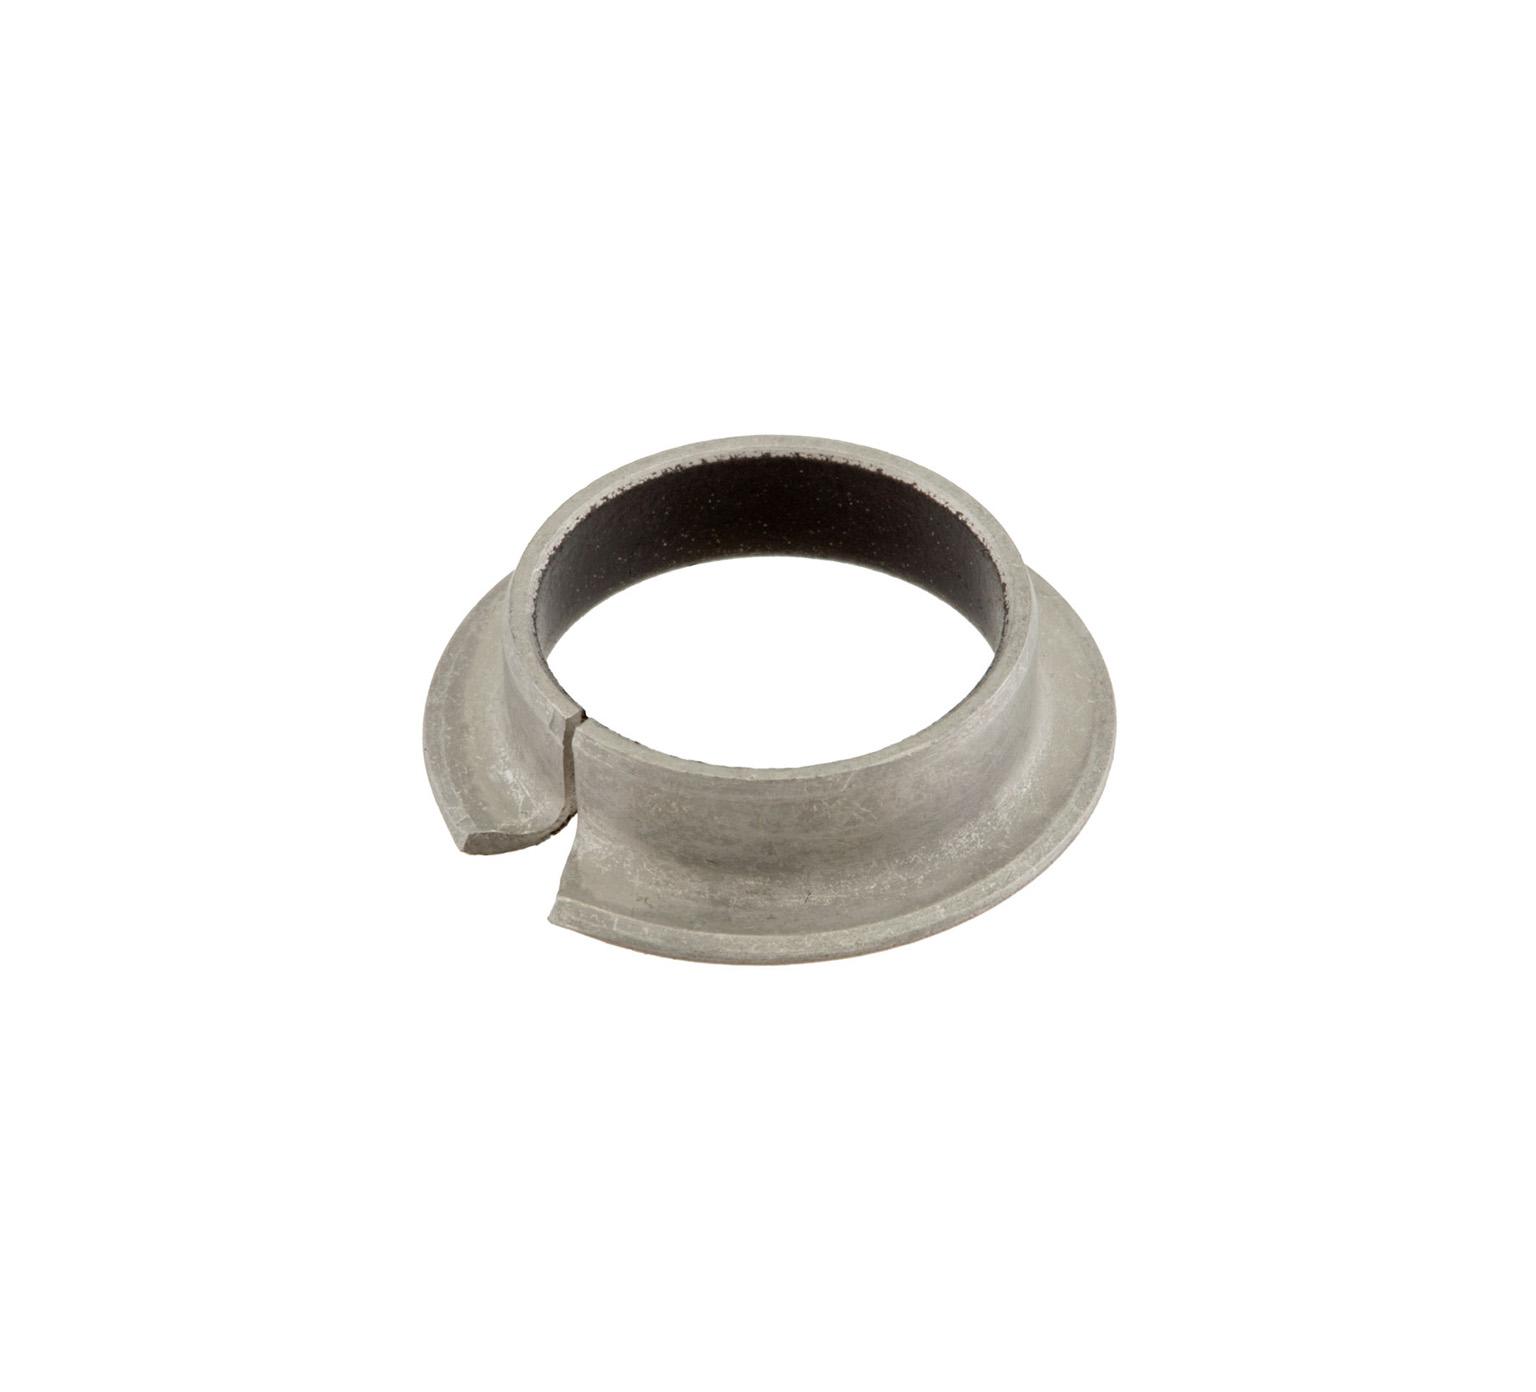 04843 Flange Bushing - 0.6252 ID x 0.25 in alt 1